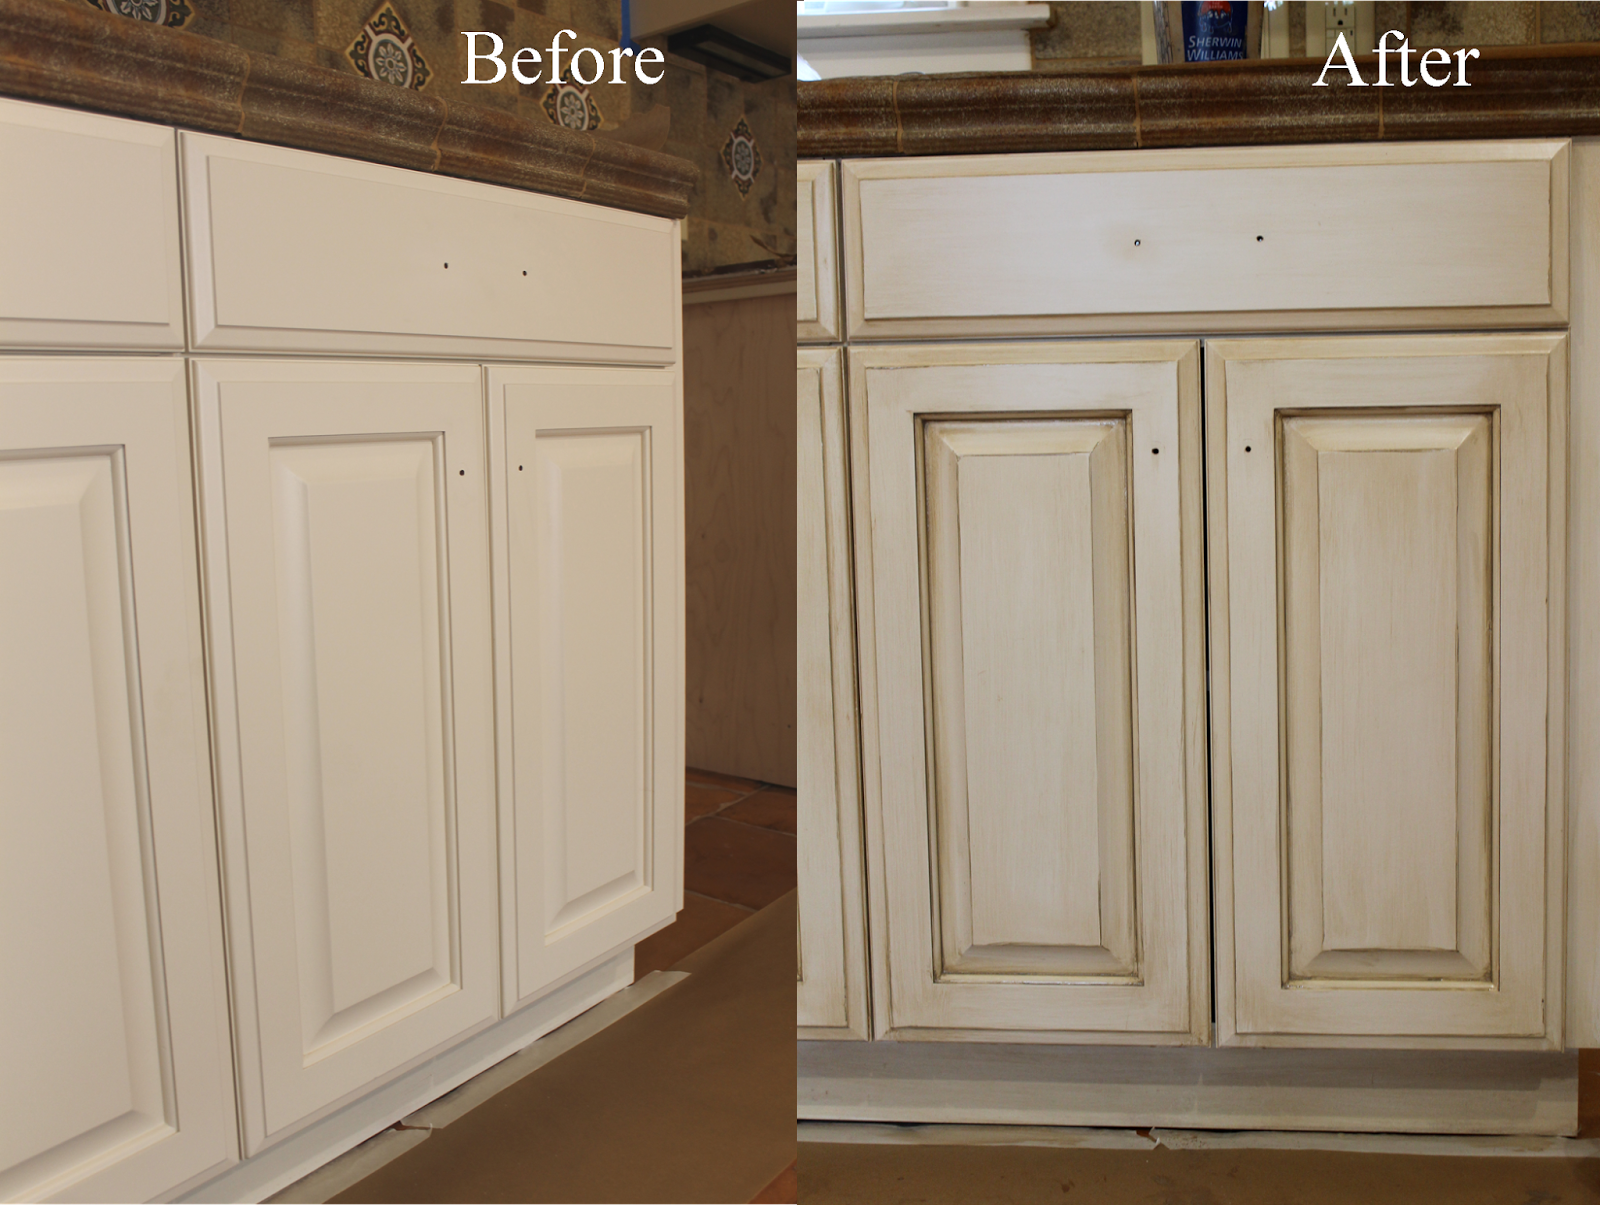 How To Glazing Cabinets Glazed Kitchen Cabinets Glazing Cabinets Kitchen Renovation